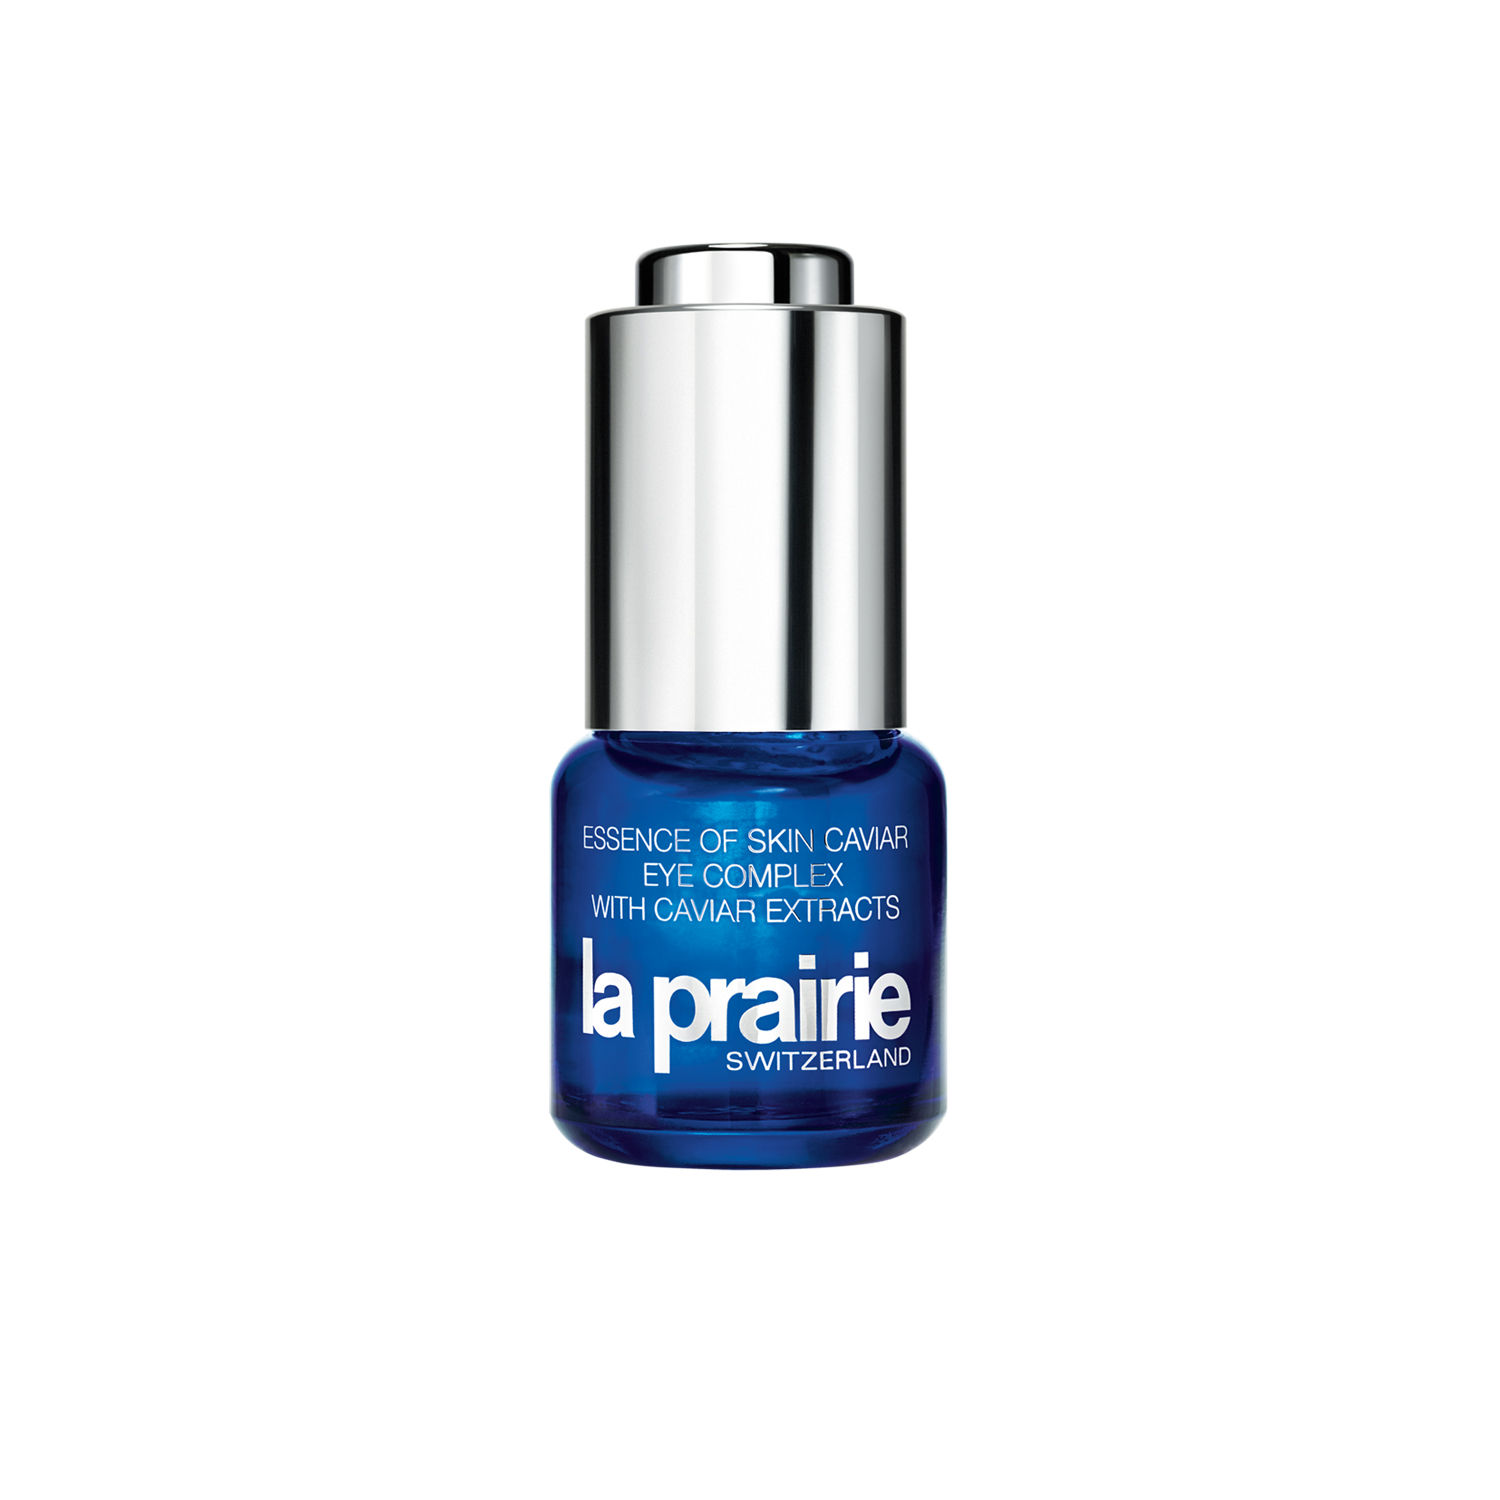 la prairie essence of skin caviar eye complex 15 ml preisvergleich. Black Bedroom Furniture Sets. Home Design Ideas